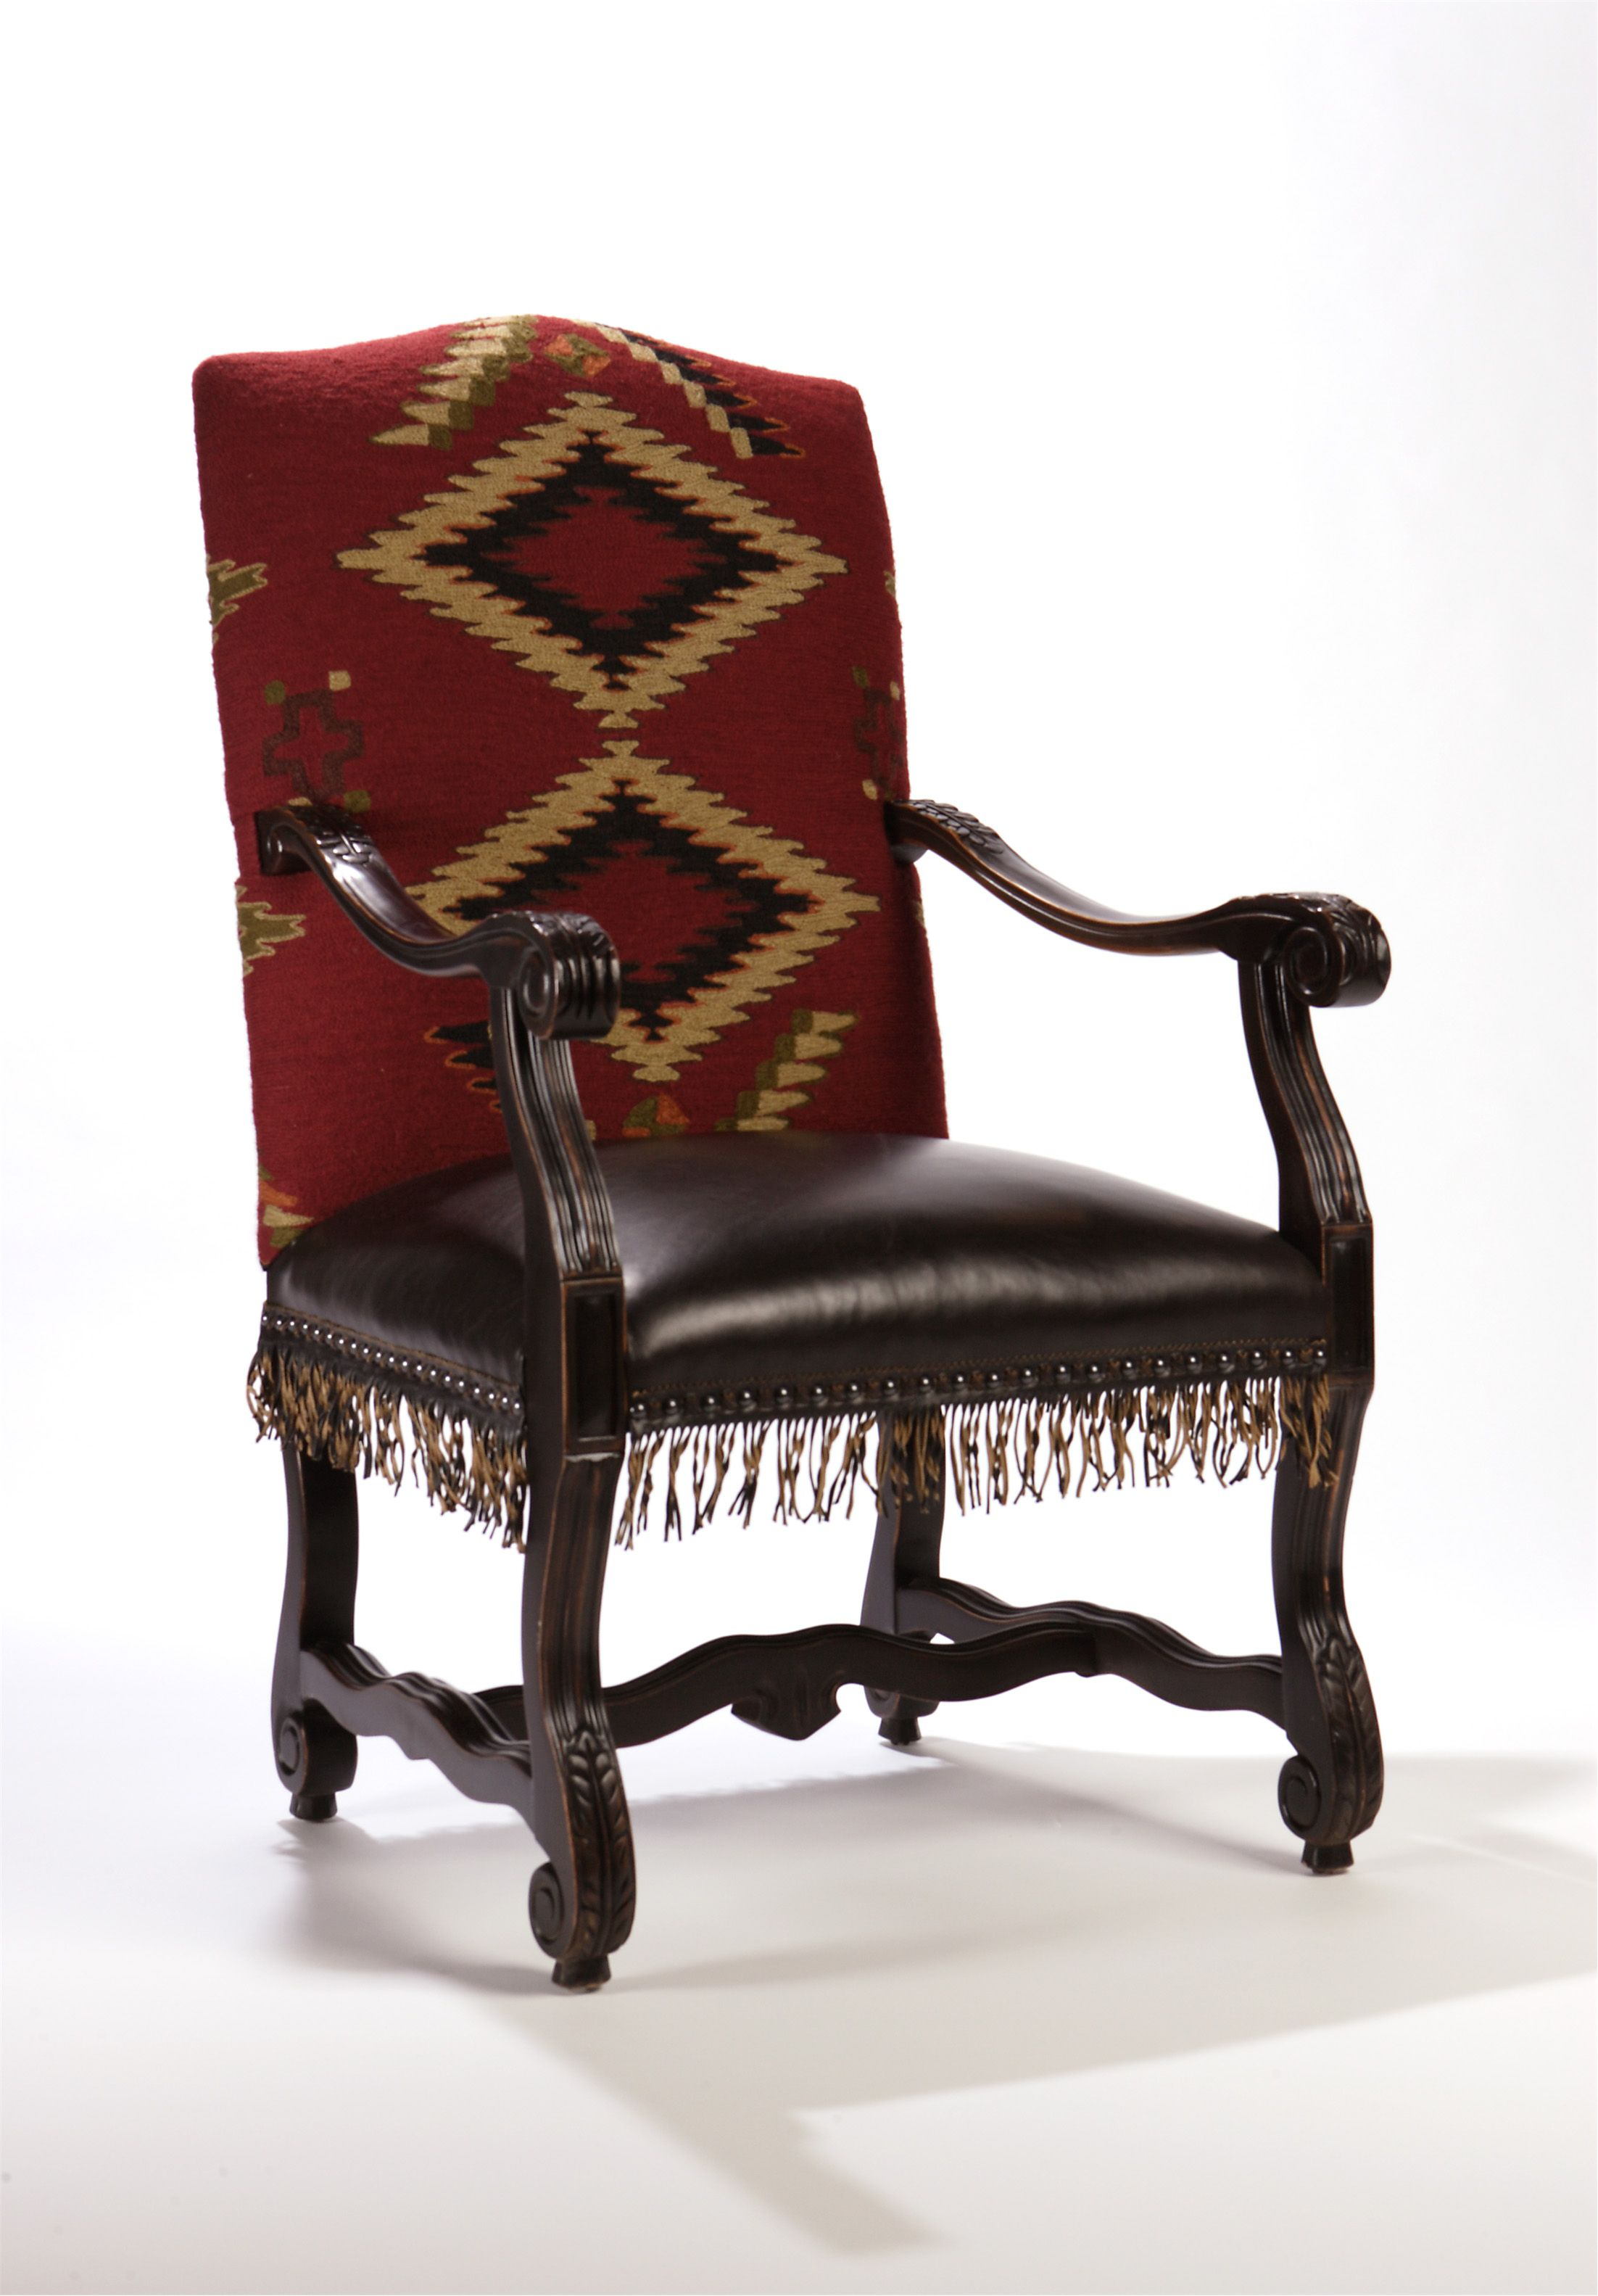 Good Eye Dazzler Navajo Rug Arm Chair, Double D Ranch Home Collection